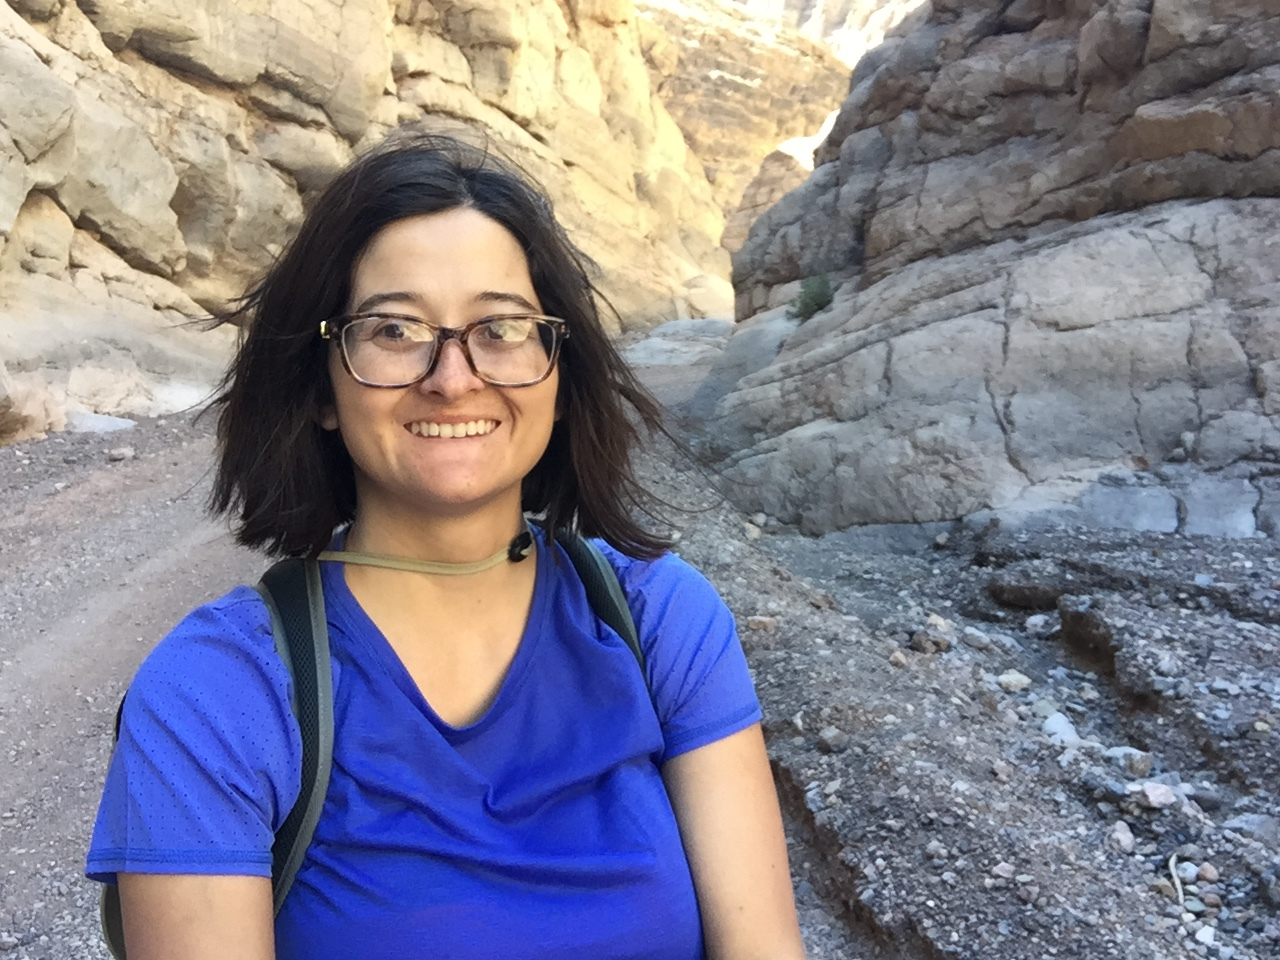 Image Description: A young, smiling, light-skinned Latina woman with dark eyes, glasses, and dark wind-swept shoulder-length hair, wearing a bright blue shirt and a backpack, on a gravel path between huge, craggy stone cliffs.